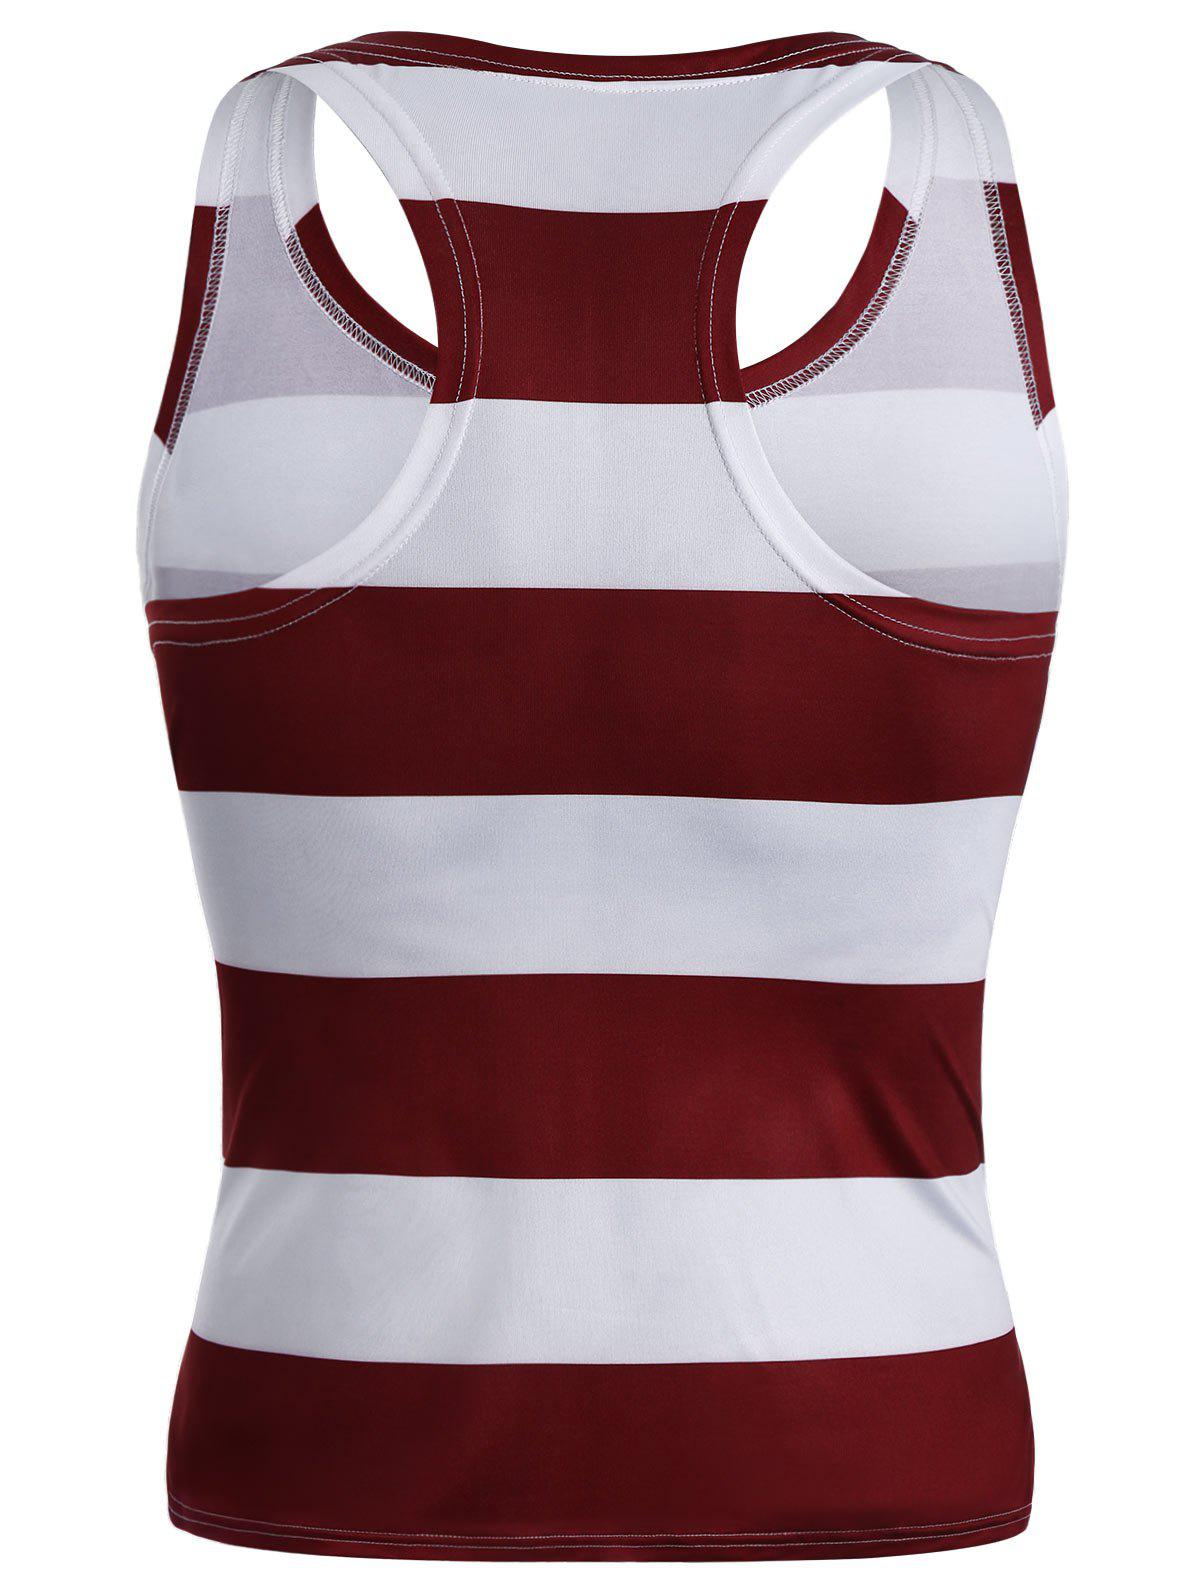 American Flag Patriotic Muscle Racerback Tank Top - multicolorcolore M